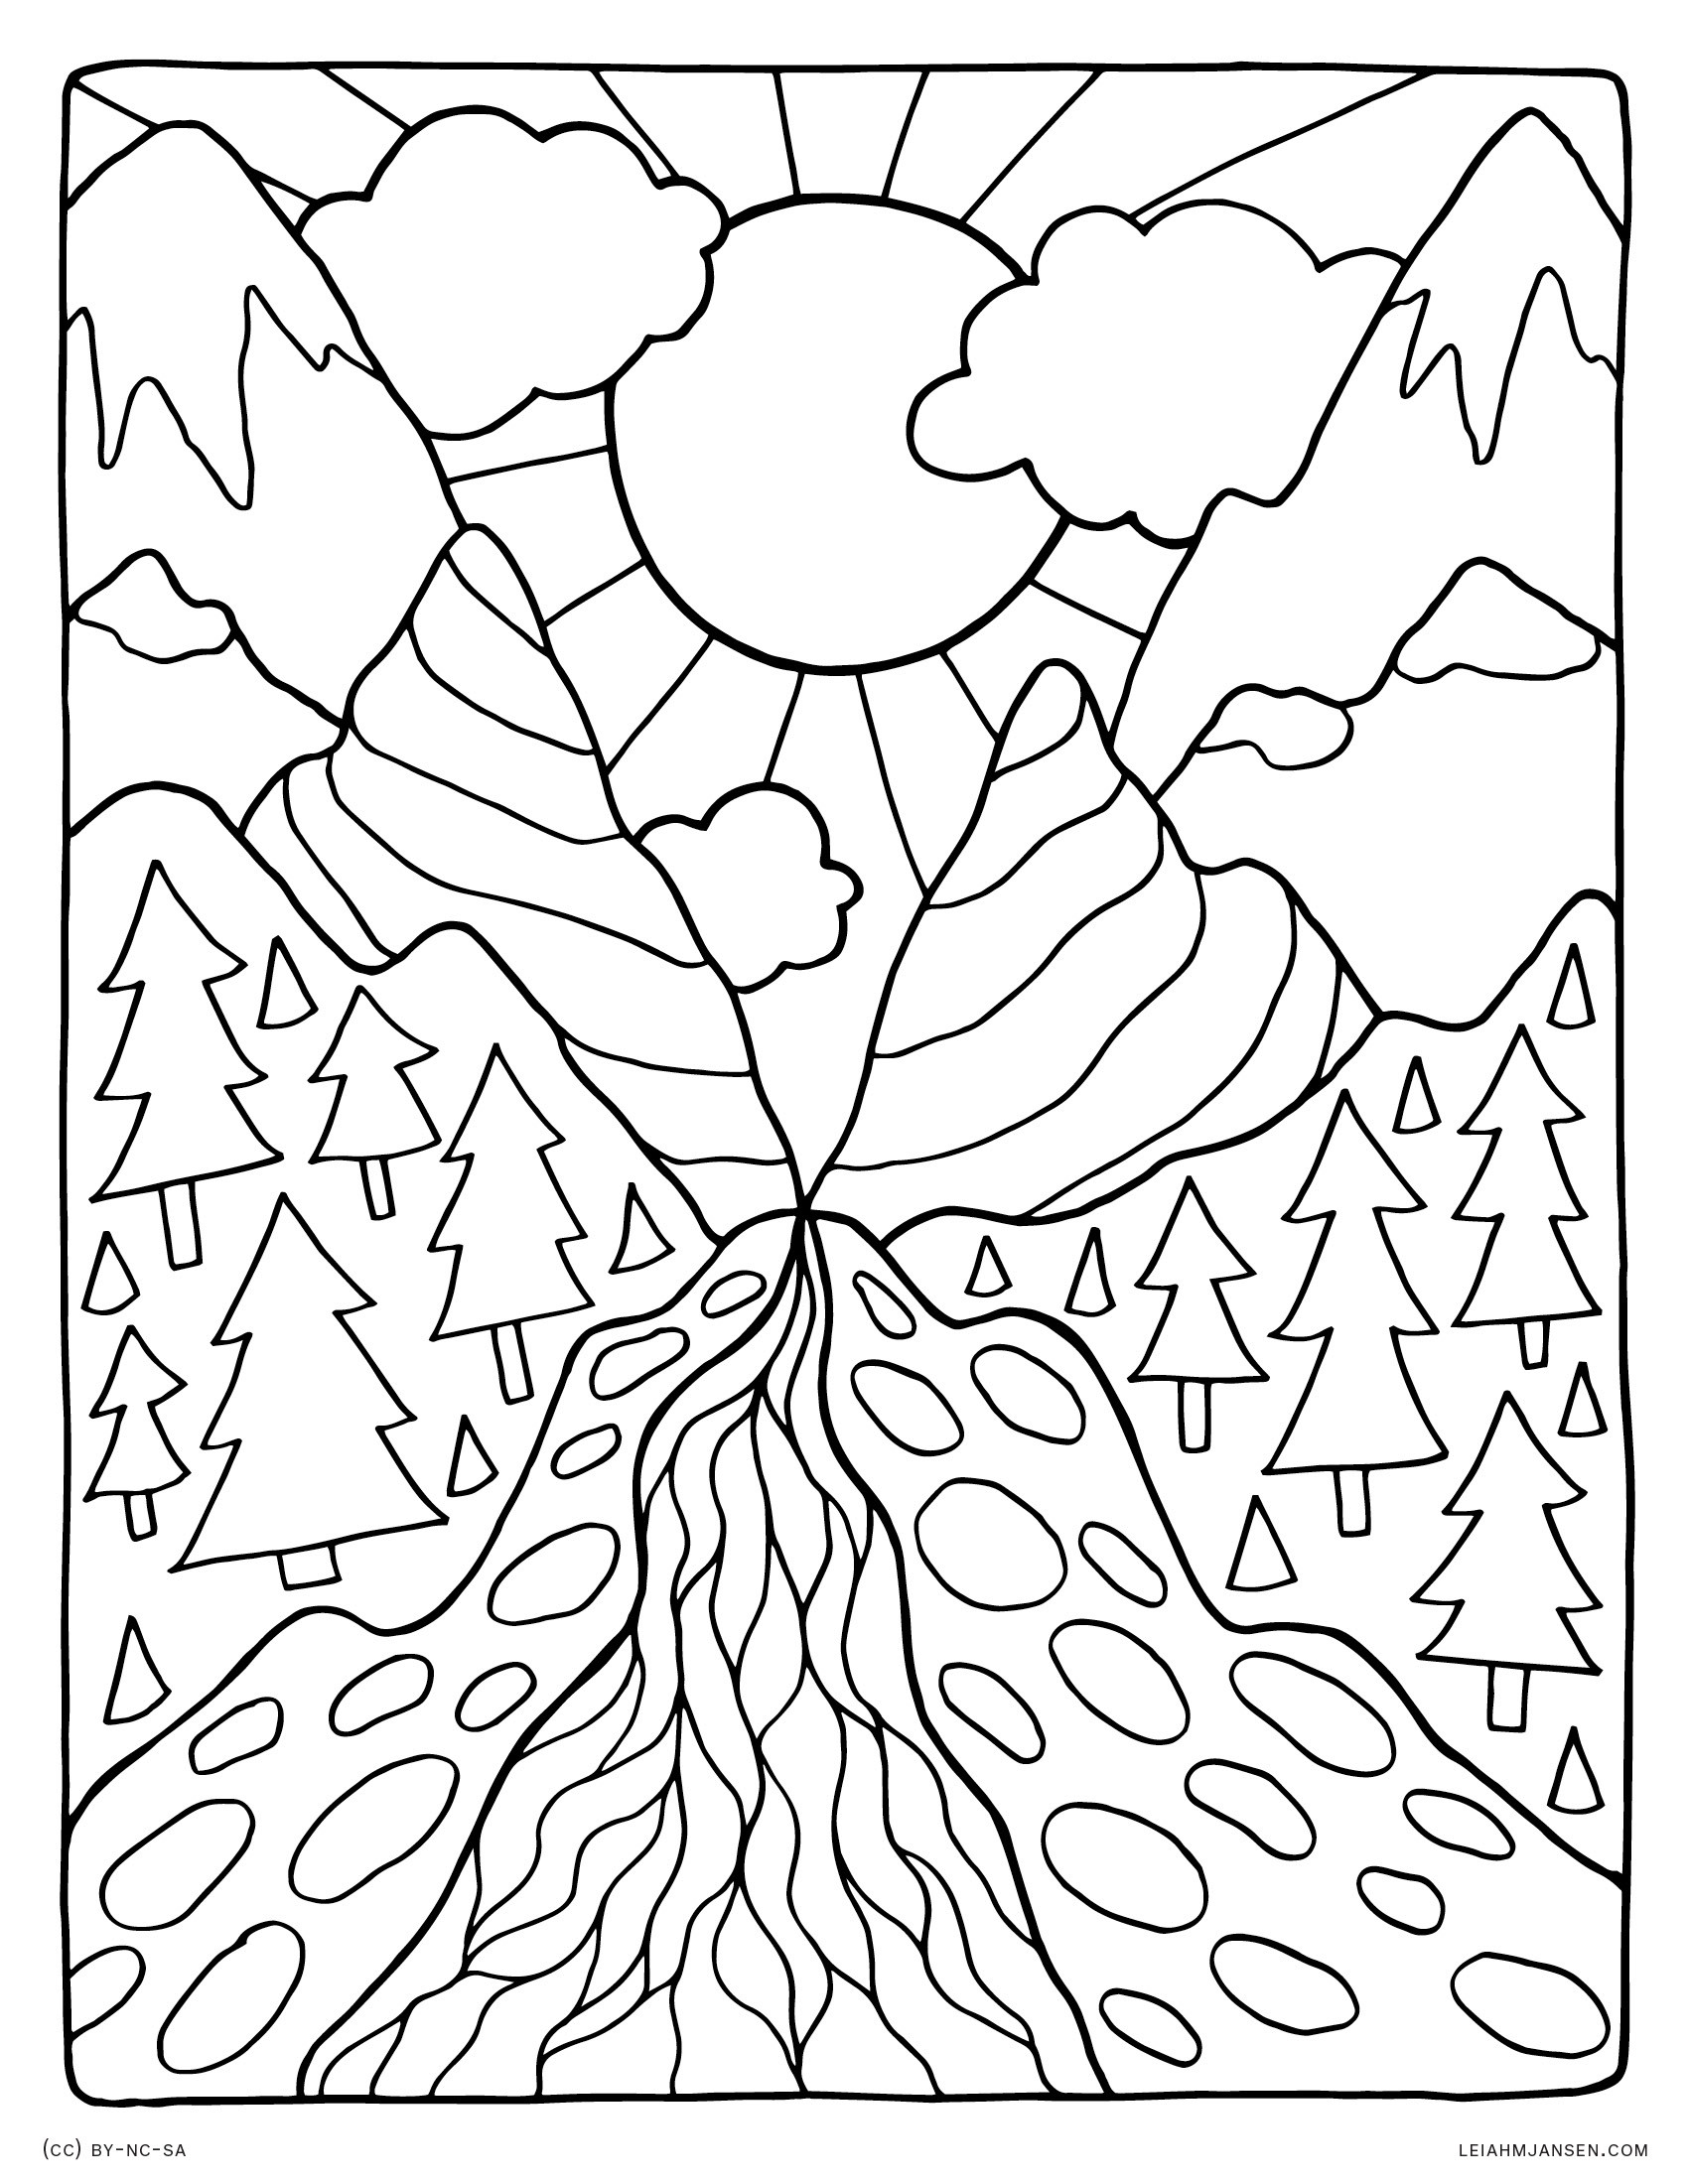 coloring worksheets nature nature coloring pages free download on clipartmag coloring worksheets nature